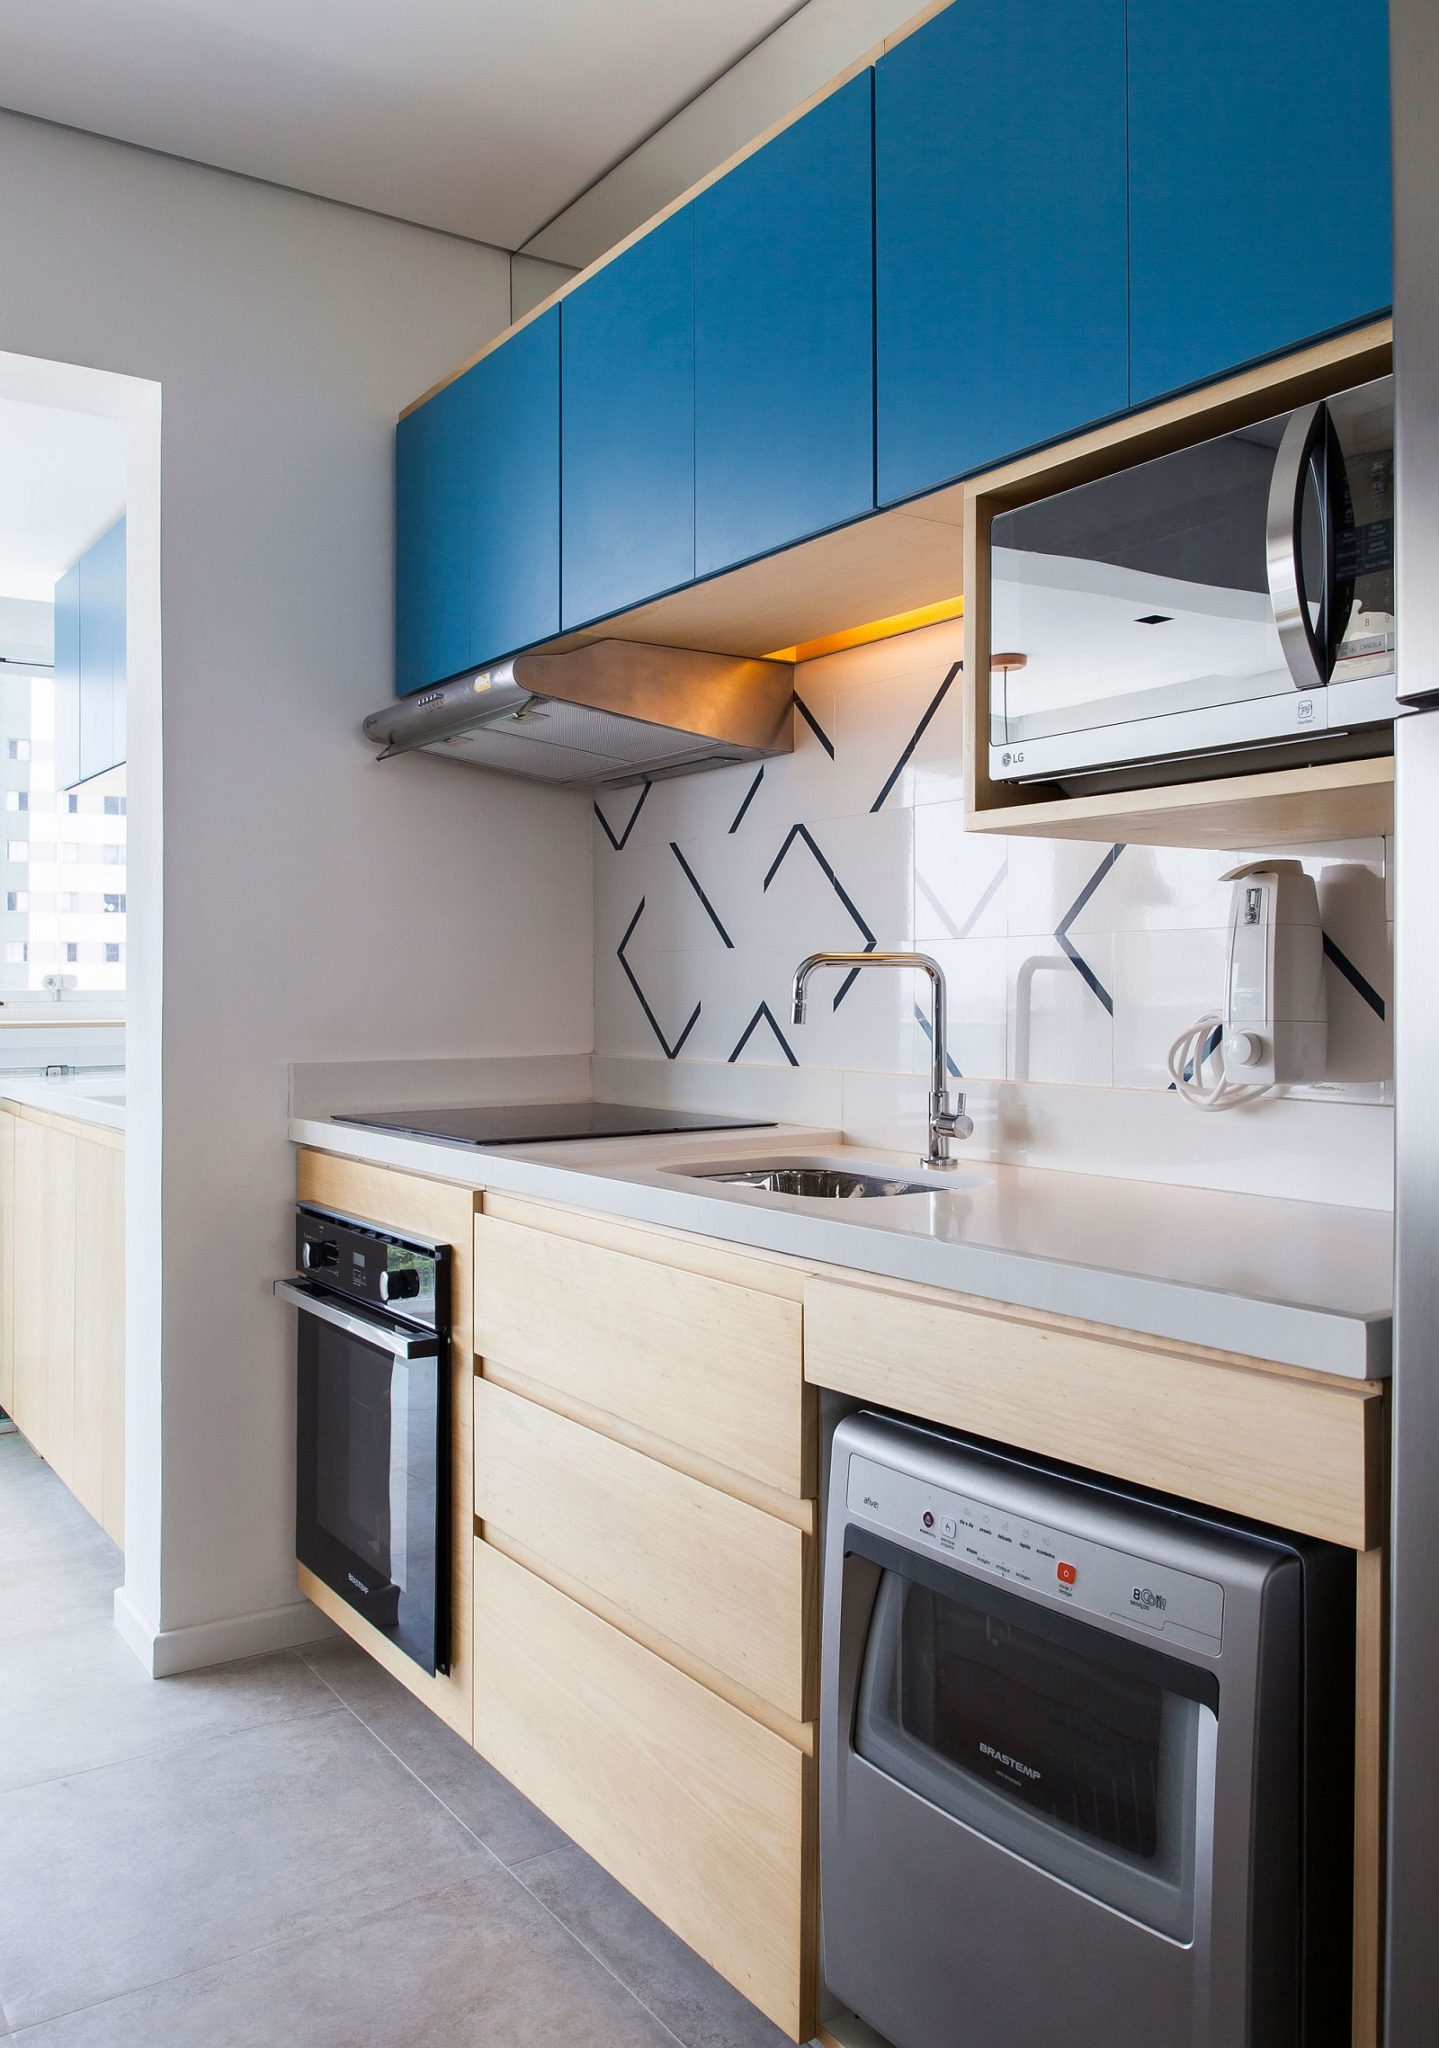 Small single wall kitchen with bright blue cabinets atop!